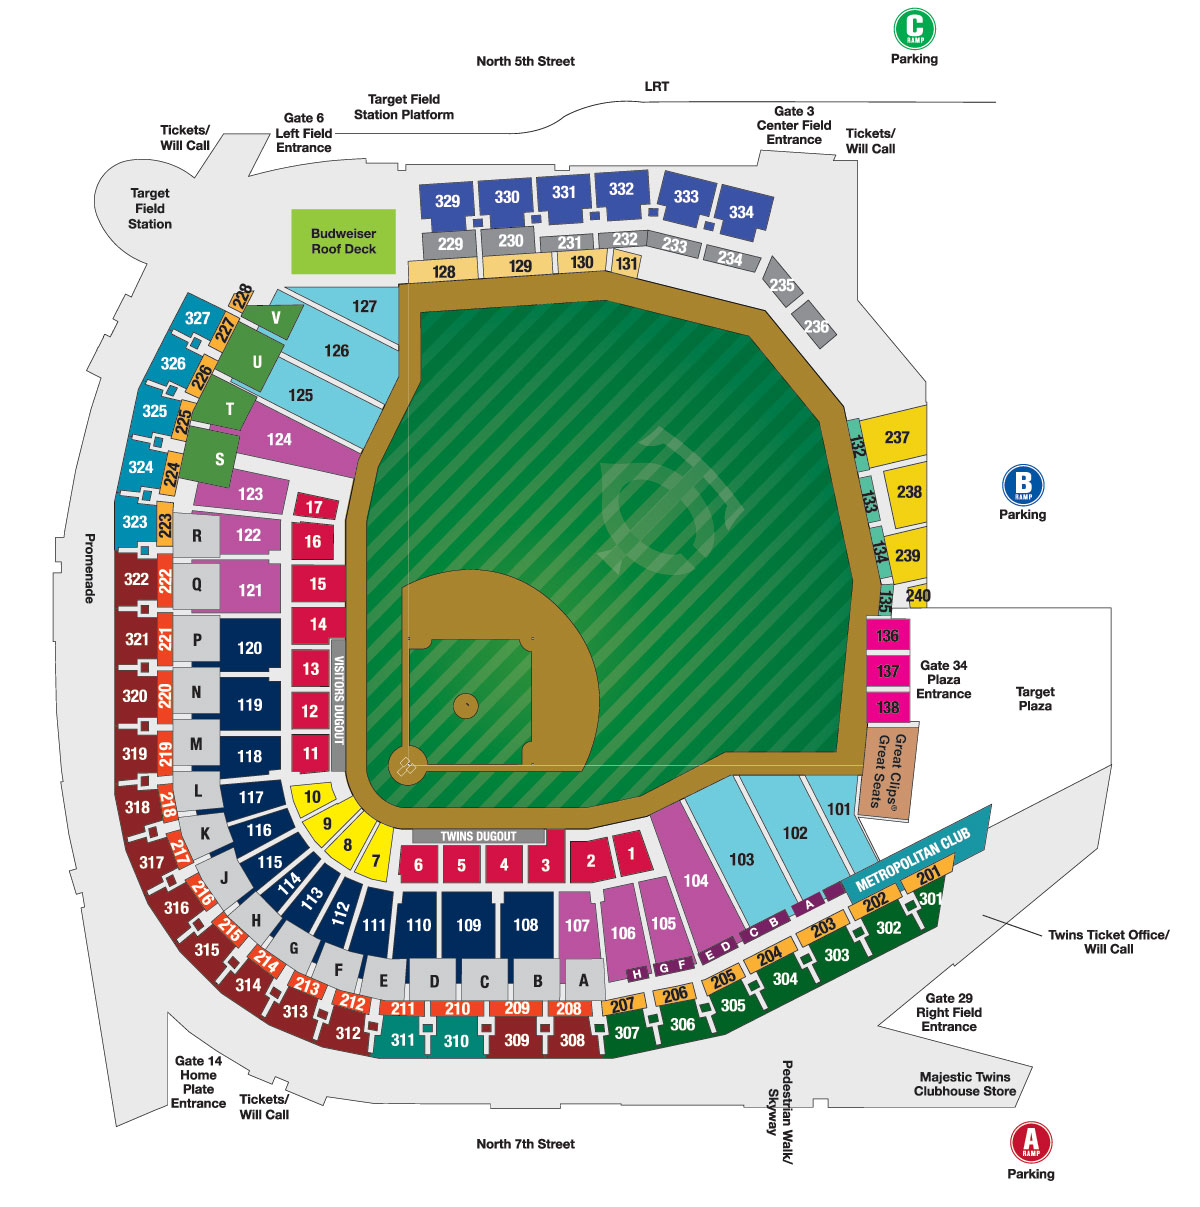 Target Field Seating Map